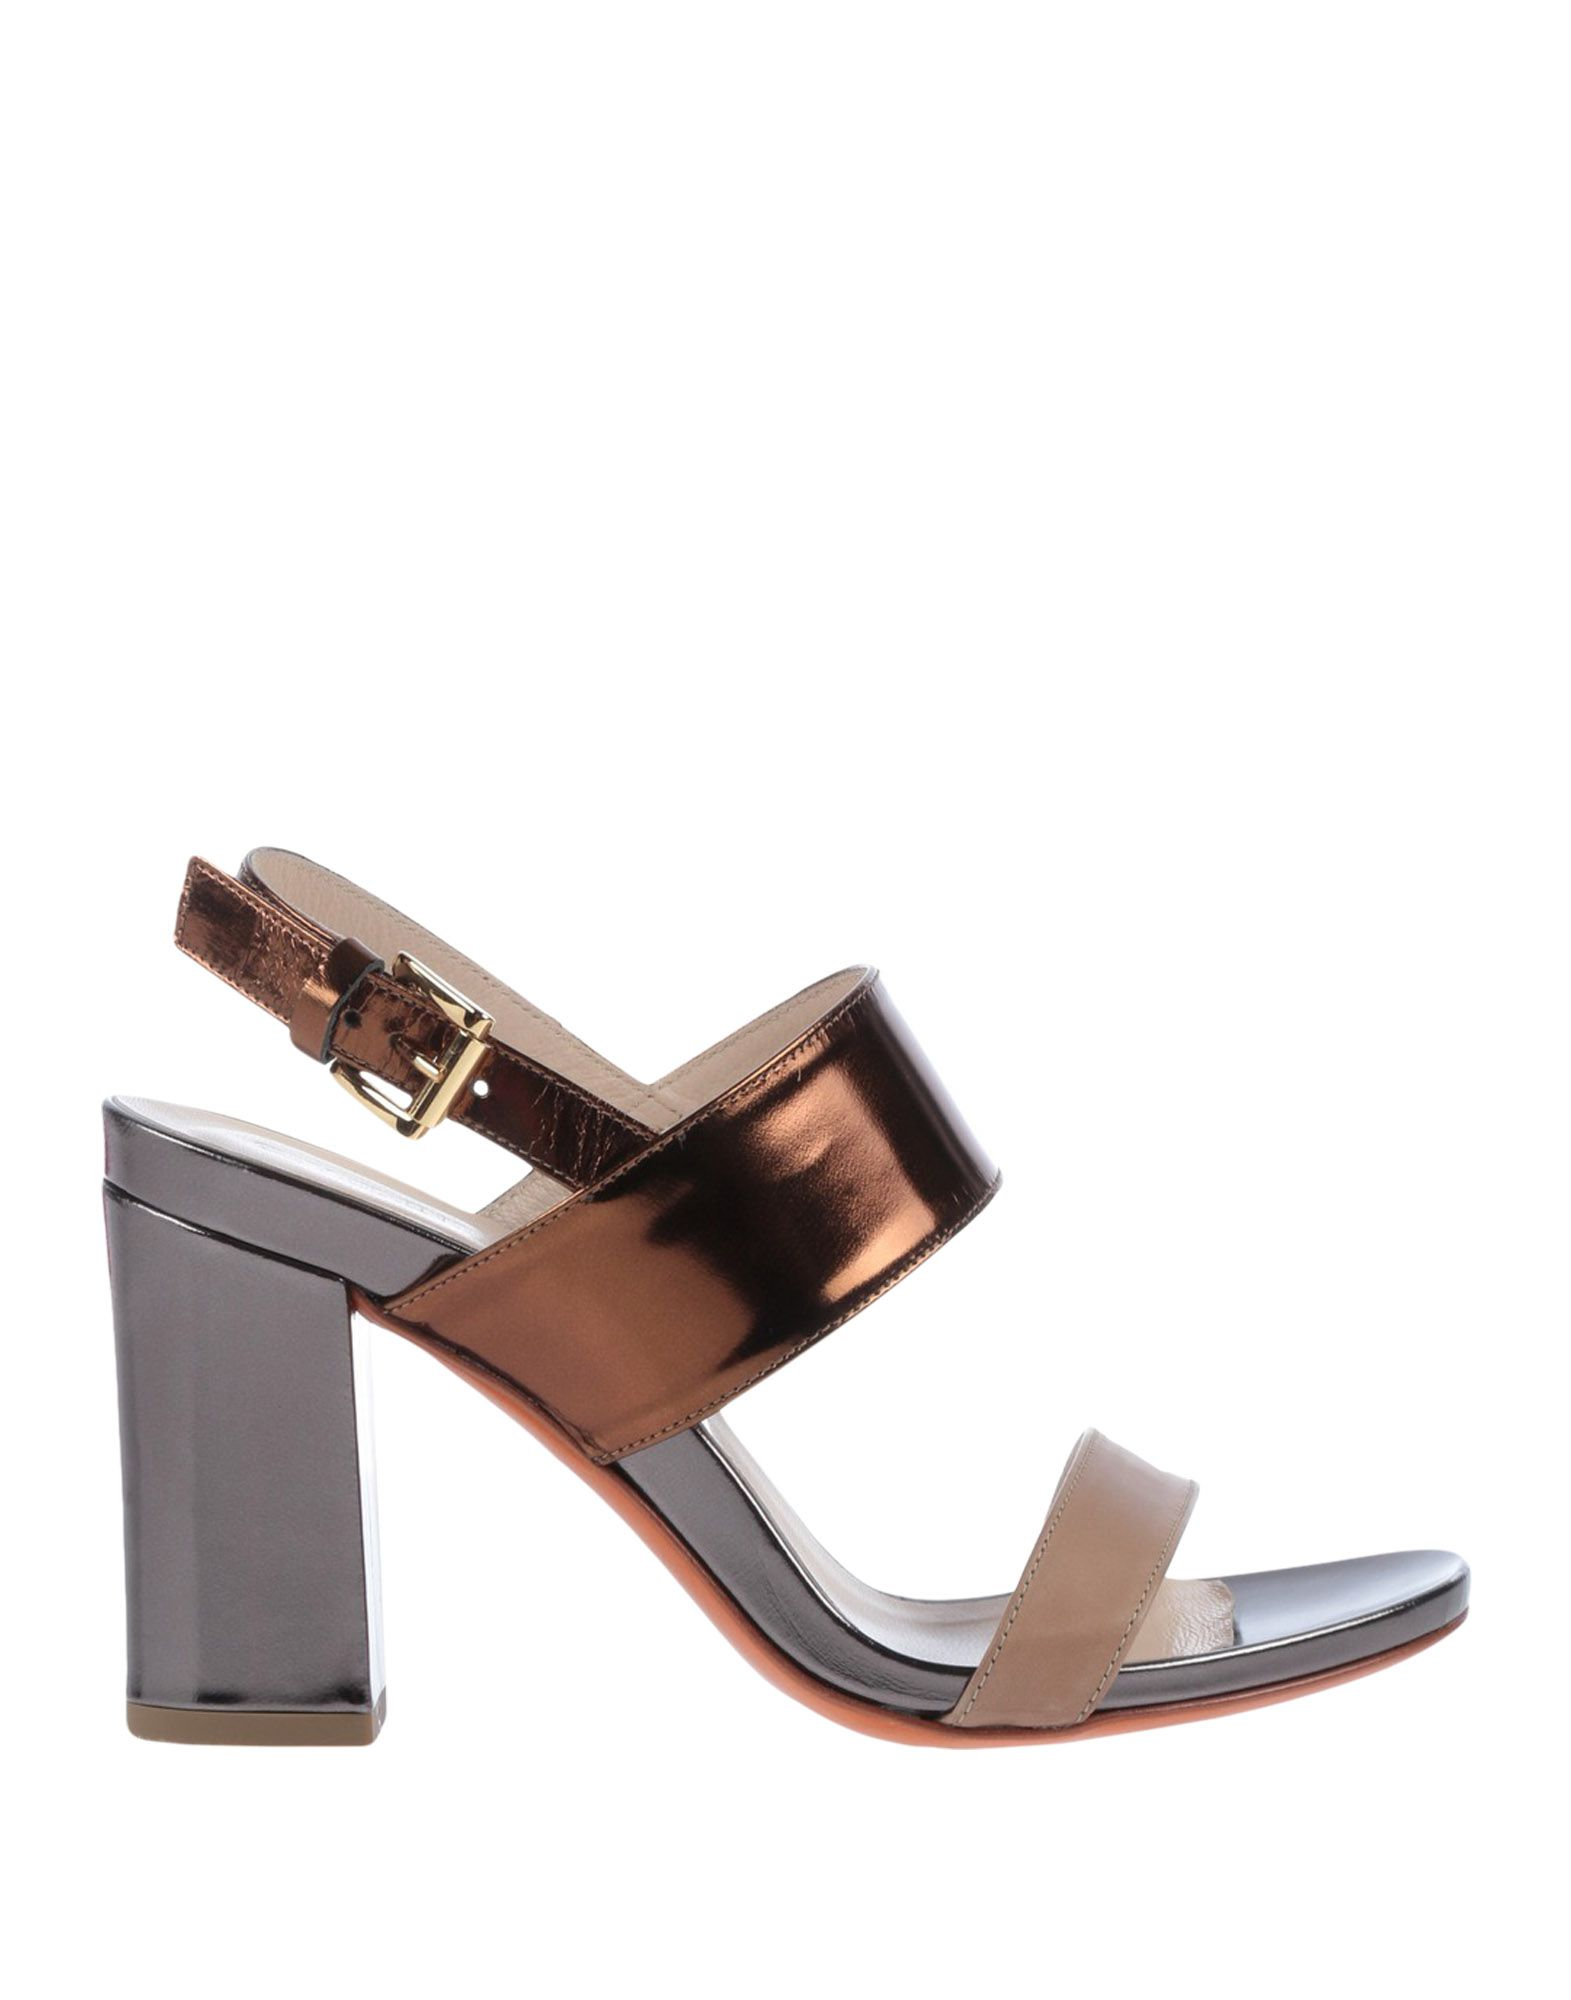 334b1061daa5d8 Cividini Sandals - Women Cividini Sandals online online online on United  Kingdom - 11528197XS 7d9843